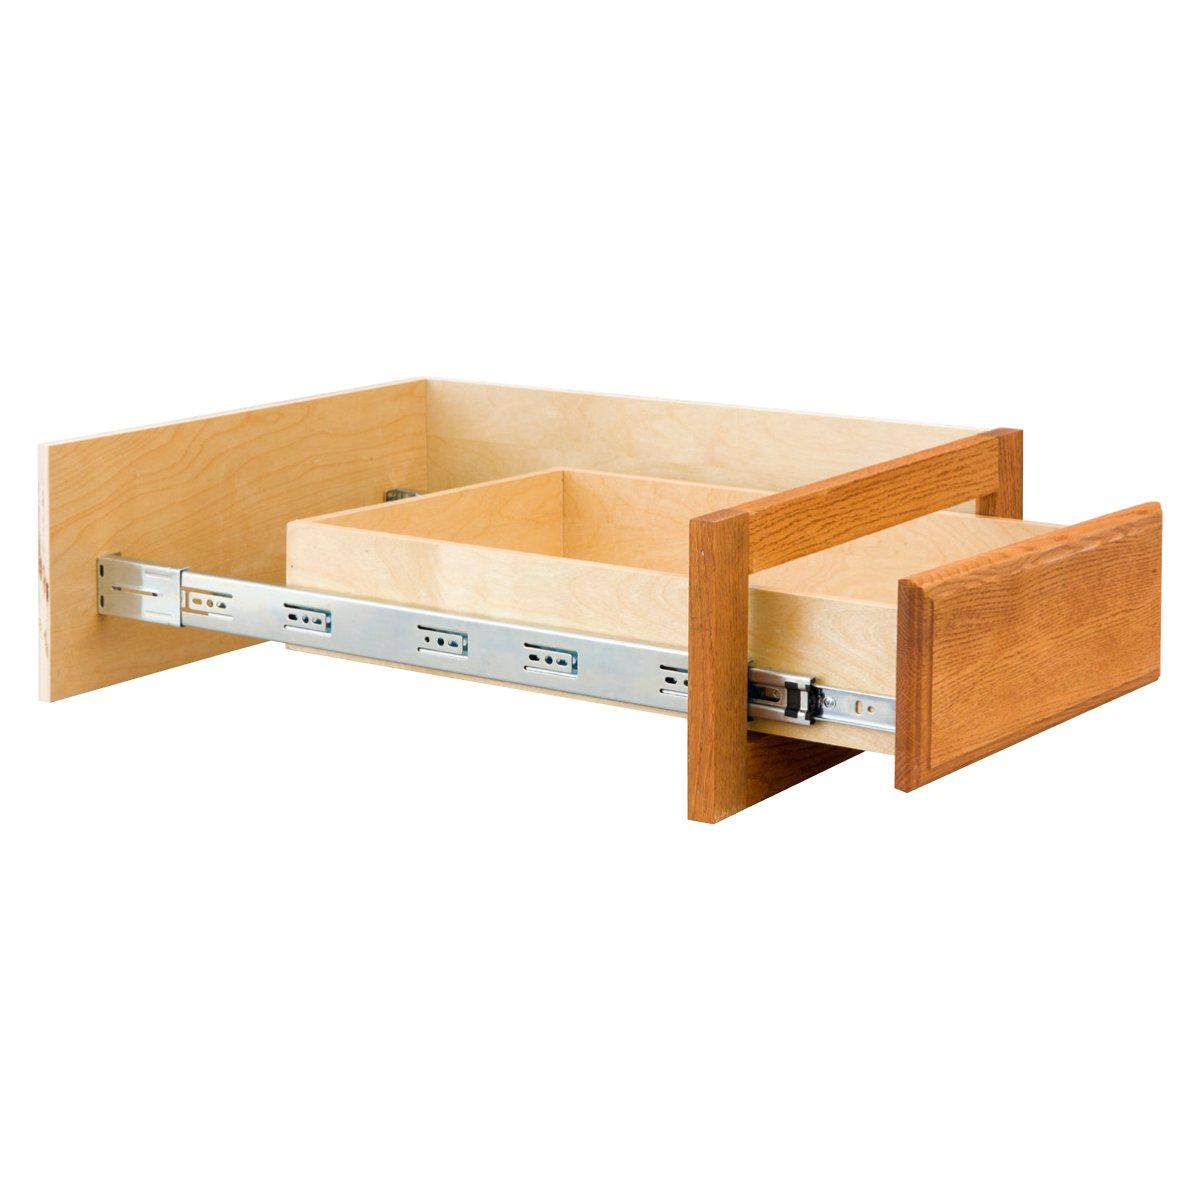 Selfclosing Drawer Slides How Do They Work Blum Lowprofile 34 Extension Epoxy Coated Drawer